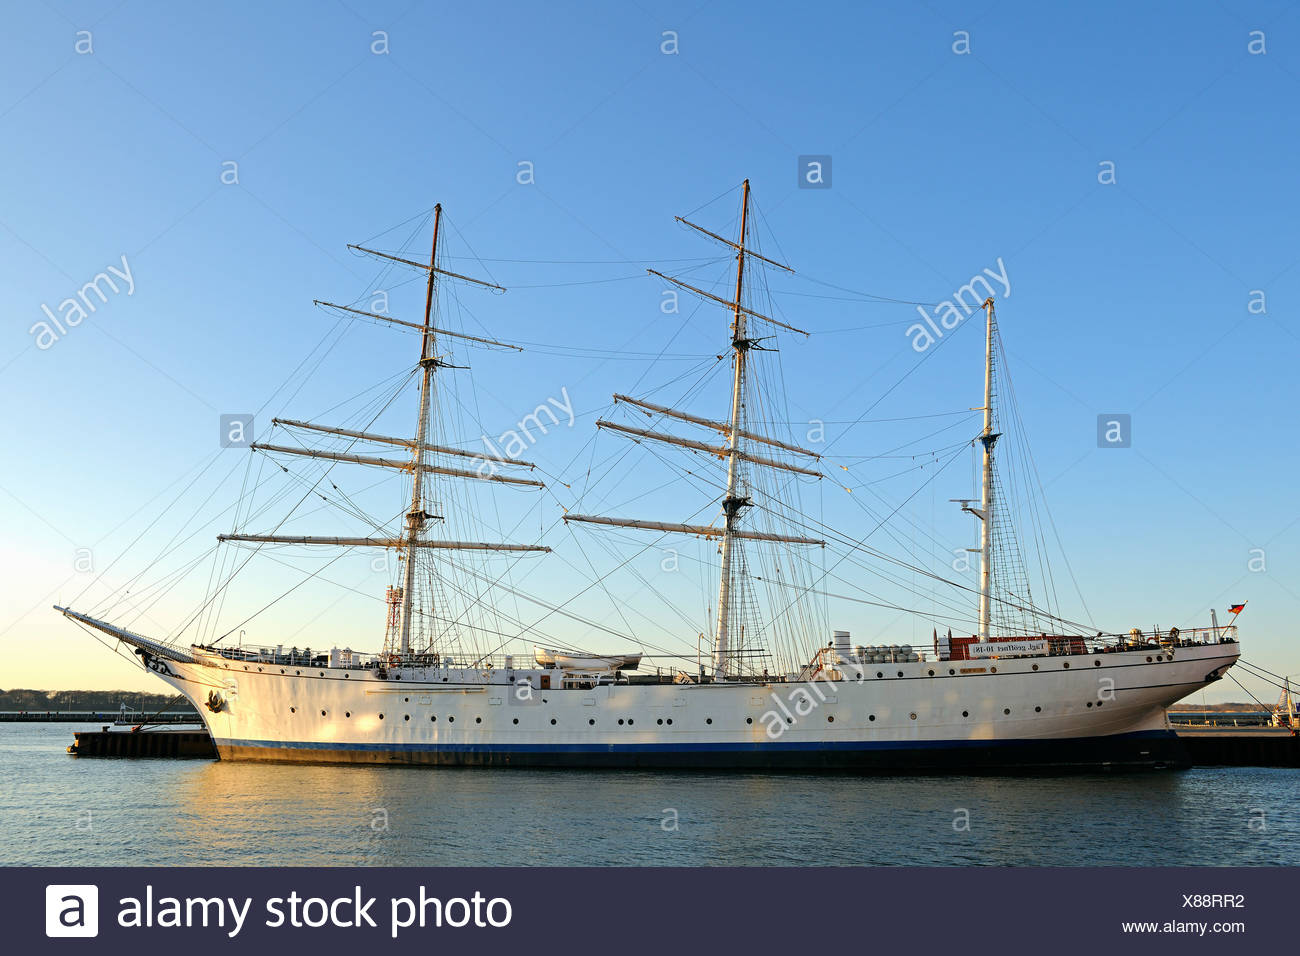 Tall ship Gorch Fock I in the morning light, old port of Stralsund, Mecklenburg-Western Pomerania, Germany, Europe, PublicGround - Stock Image